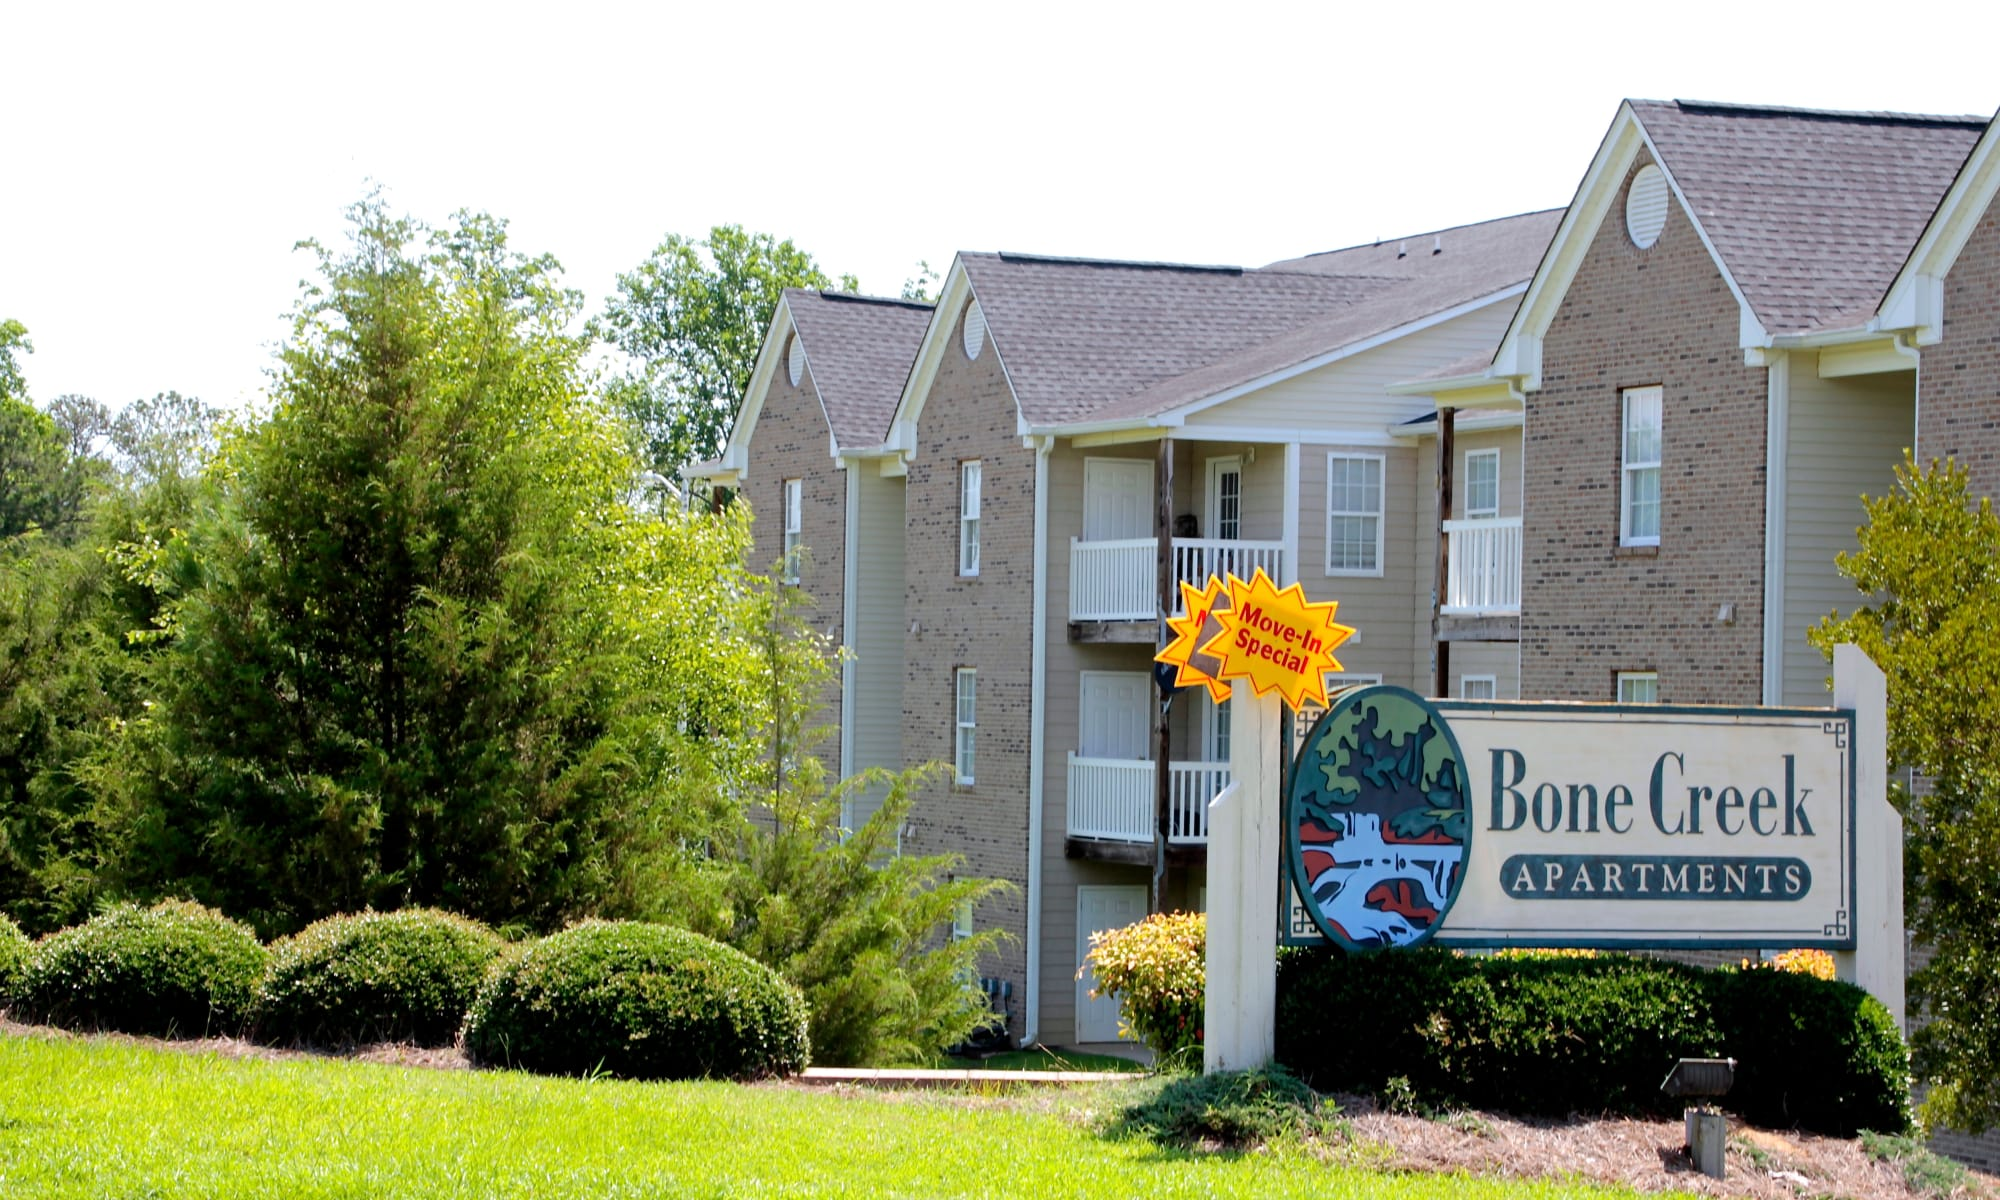 Bone Creek Apartments apartments in Fayetteville, North Carolina